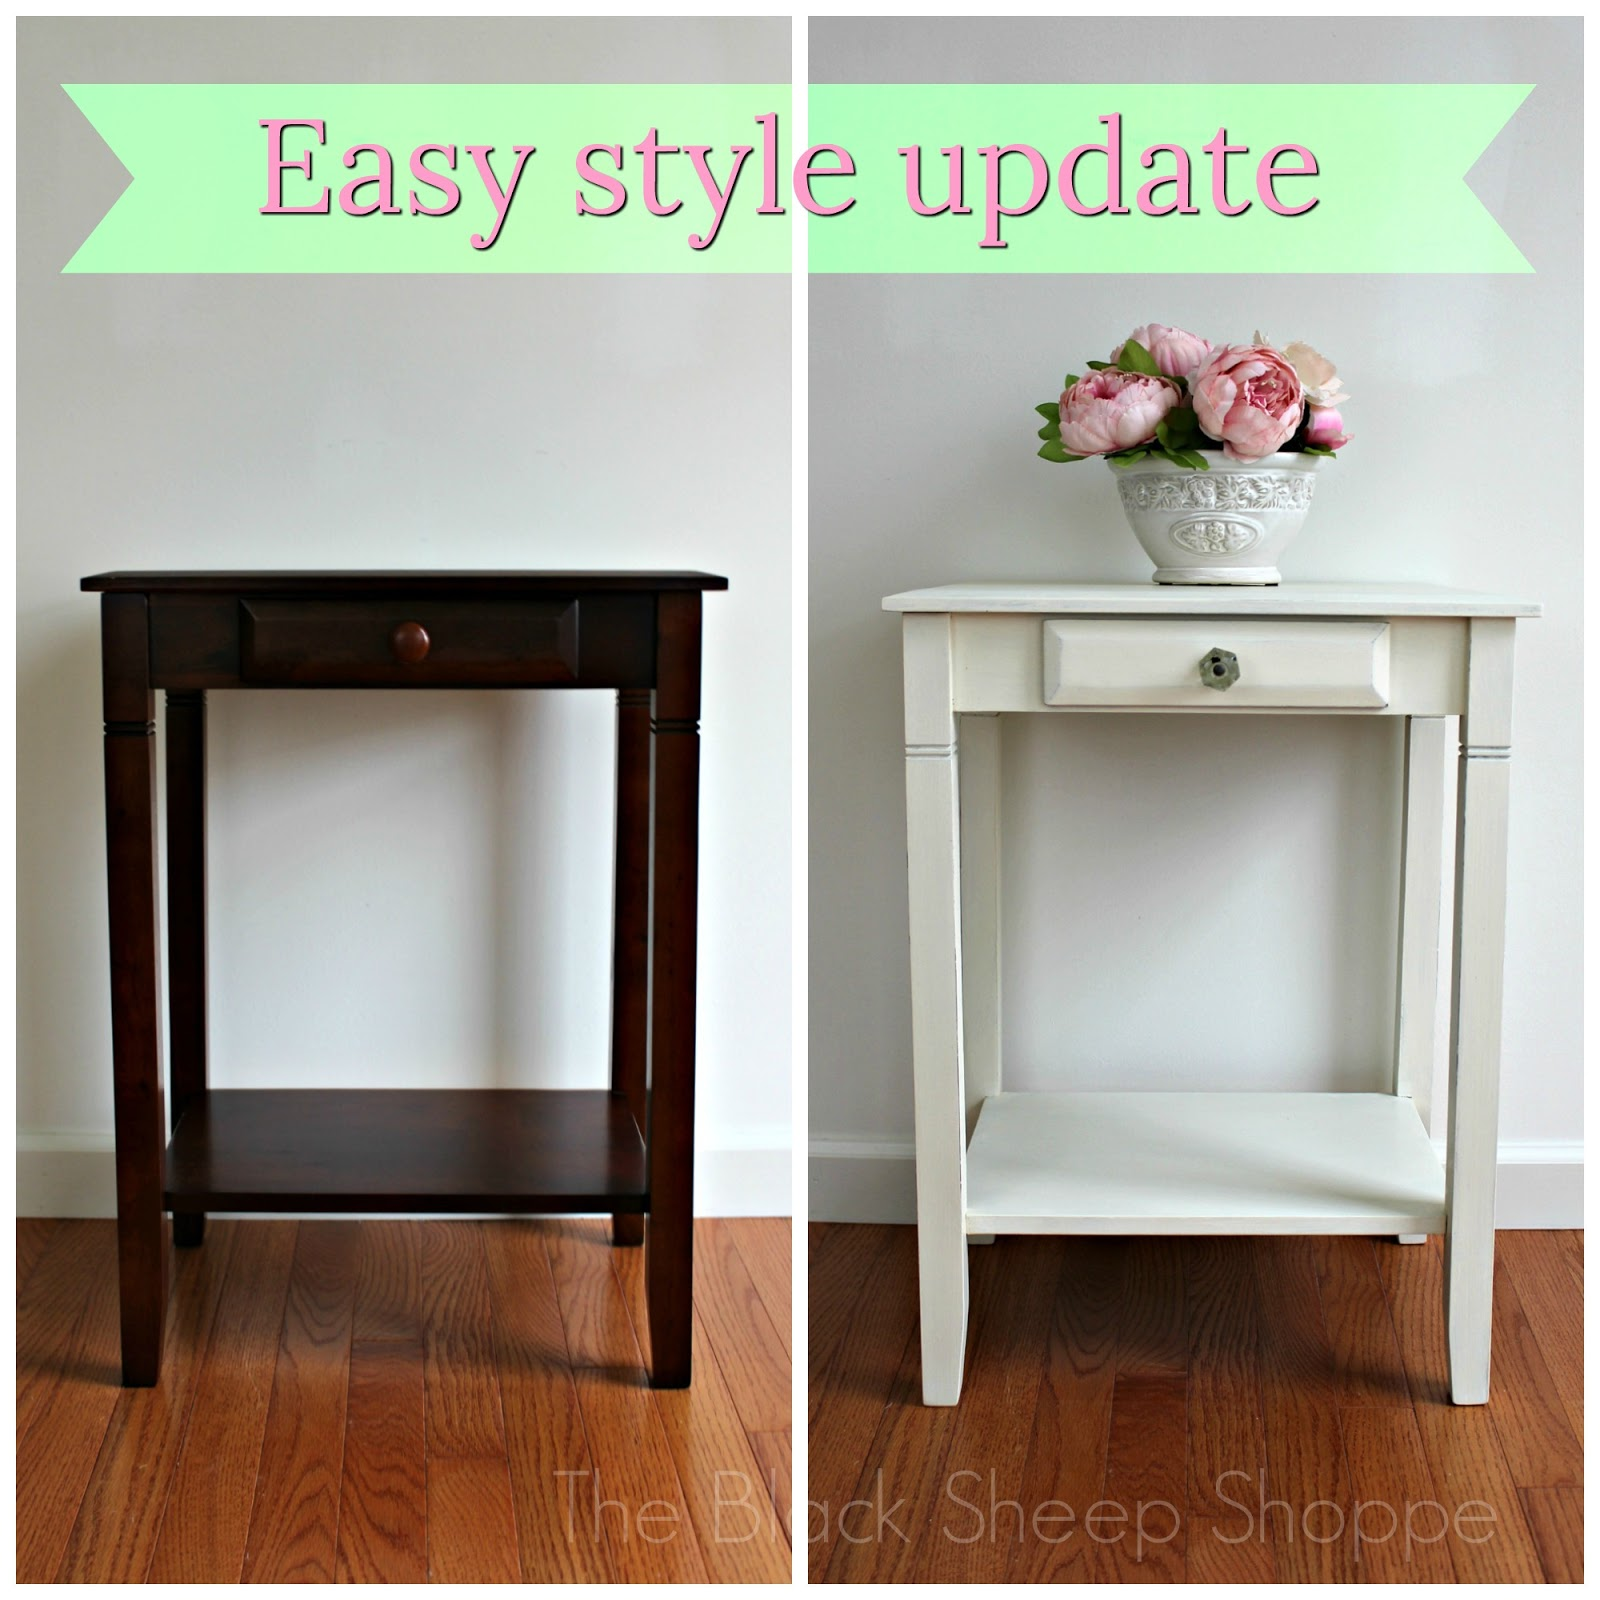 It's easy to update your furniture style with Chalk Paint.